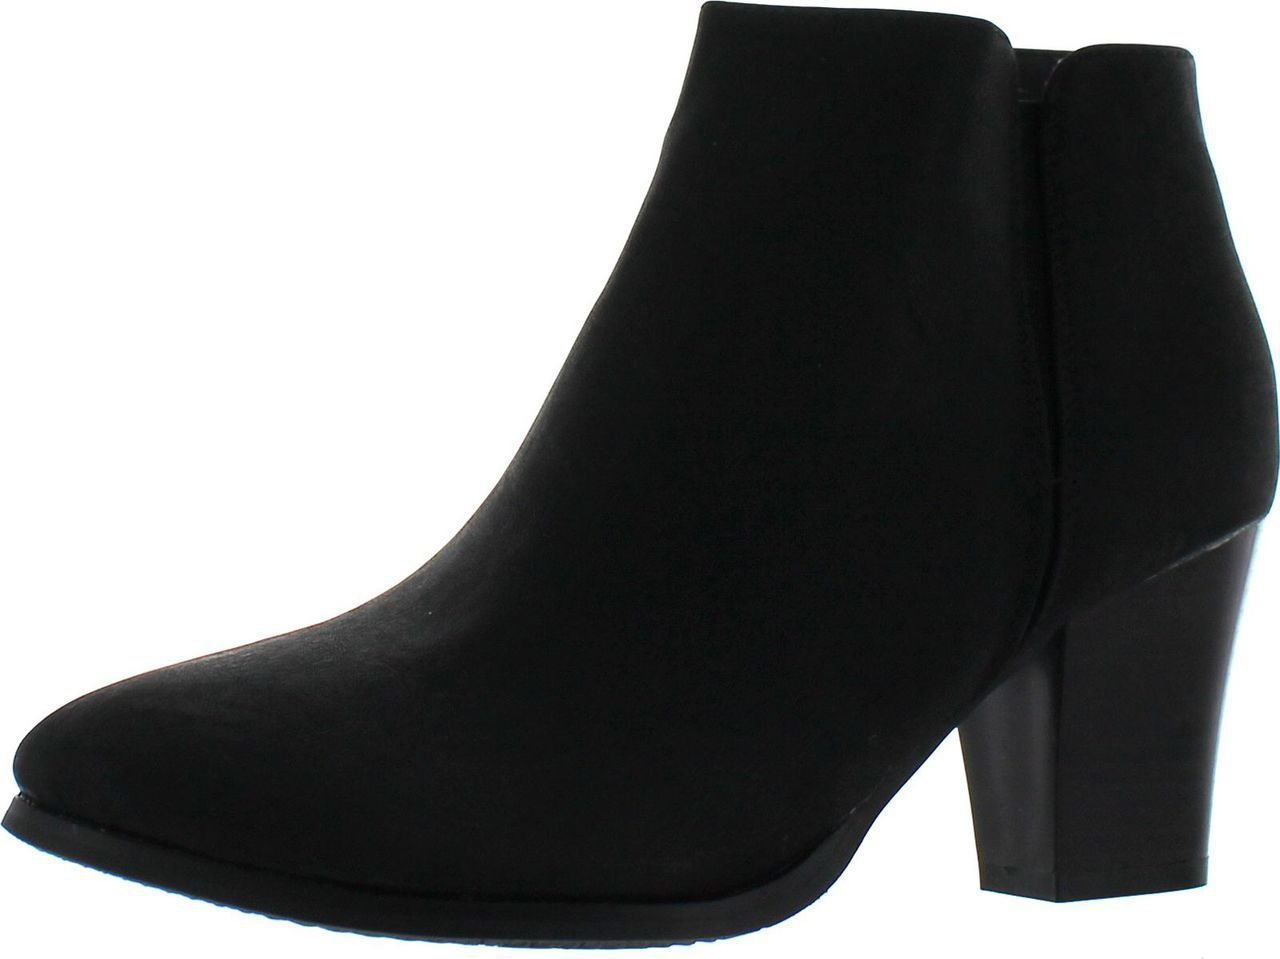 ShoeCenter.com - Reneeze Baba-04 Womens Fashionable Stacked Heels Ankle Booties - Black, $39.95 (http://www.shoecenter.com/reneeze-baba-04-womens-fashionable-stacked-heels-ankle-booties-black/)